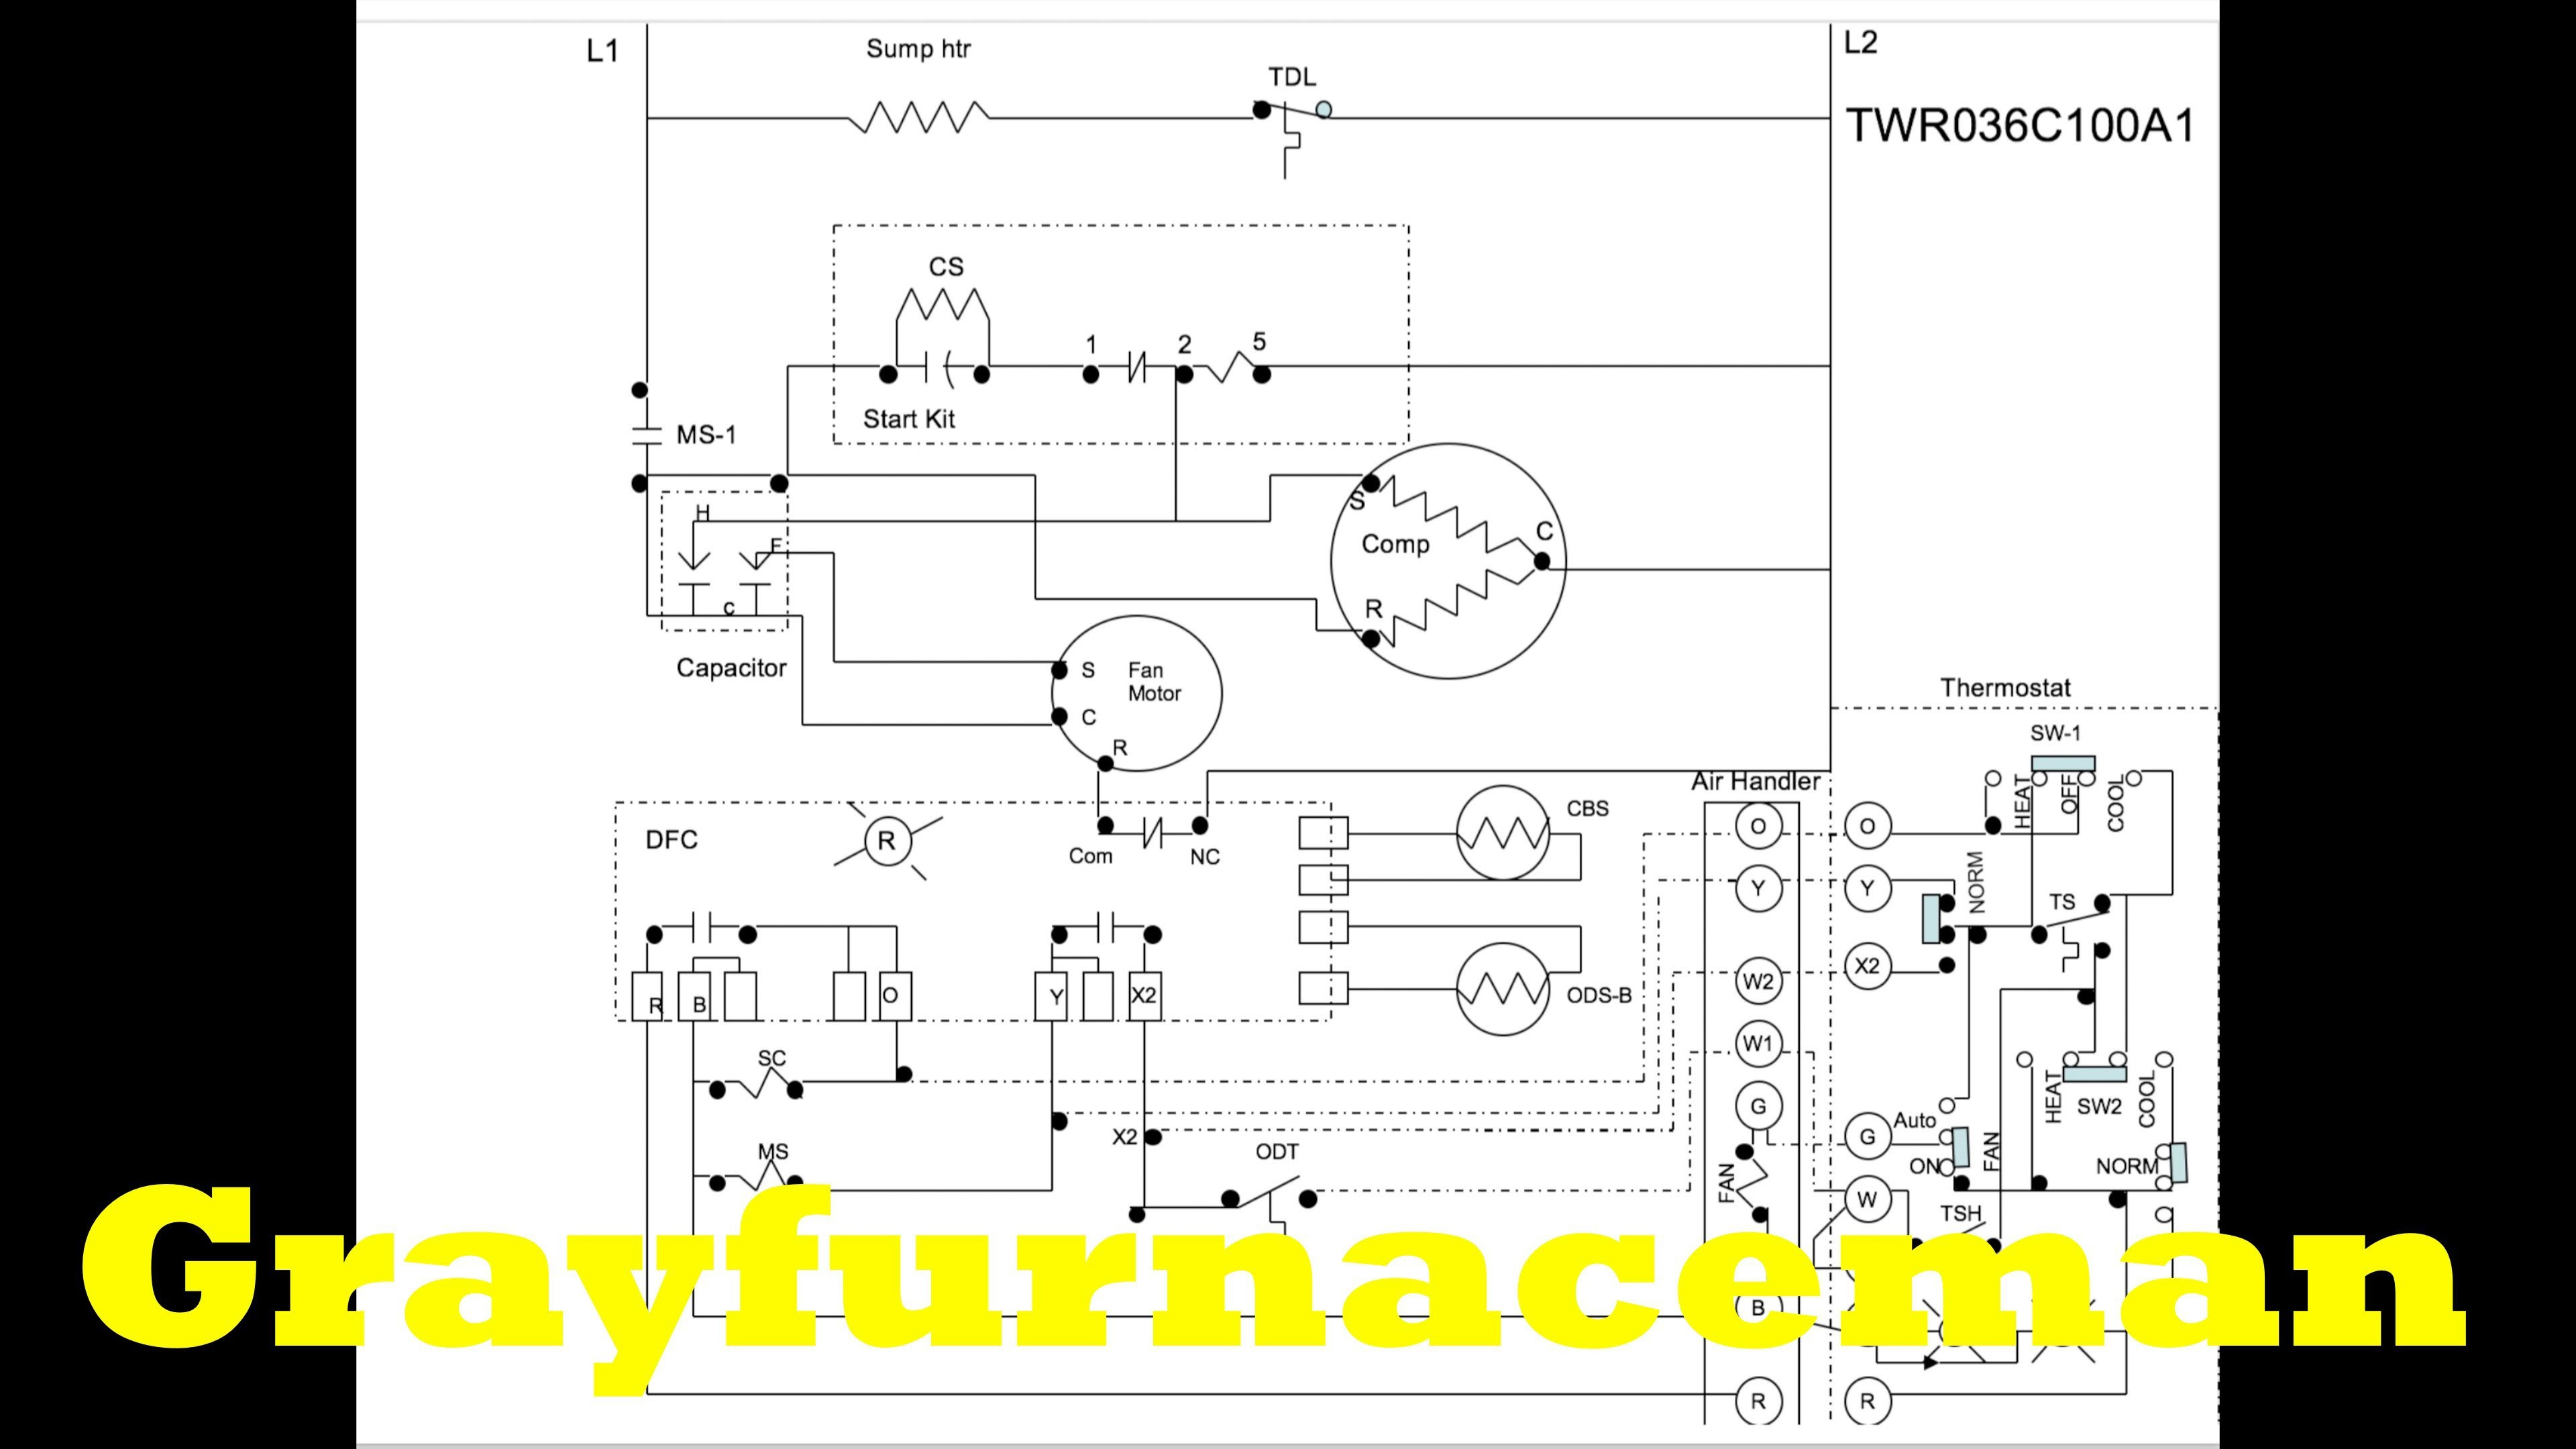 Carrier heat pump wiring diagram mcquay air conditioner wiring carrier heat pump wiring diagram goodman heat pump wiring diagram fresh heat pump wiring diagrams of asfbconference2016 Gallery